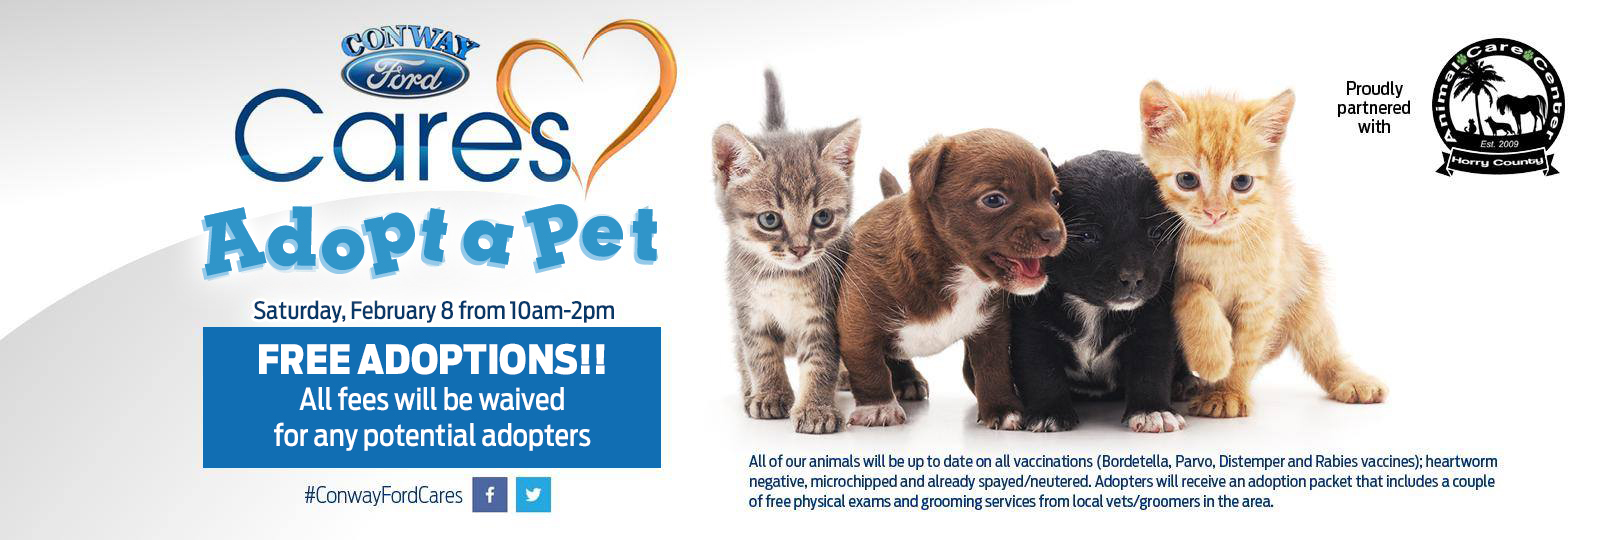 Conway Ford Cares Adopt a Pet Event